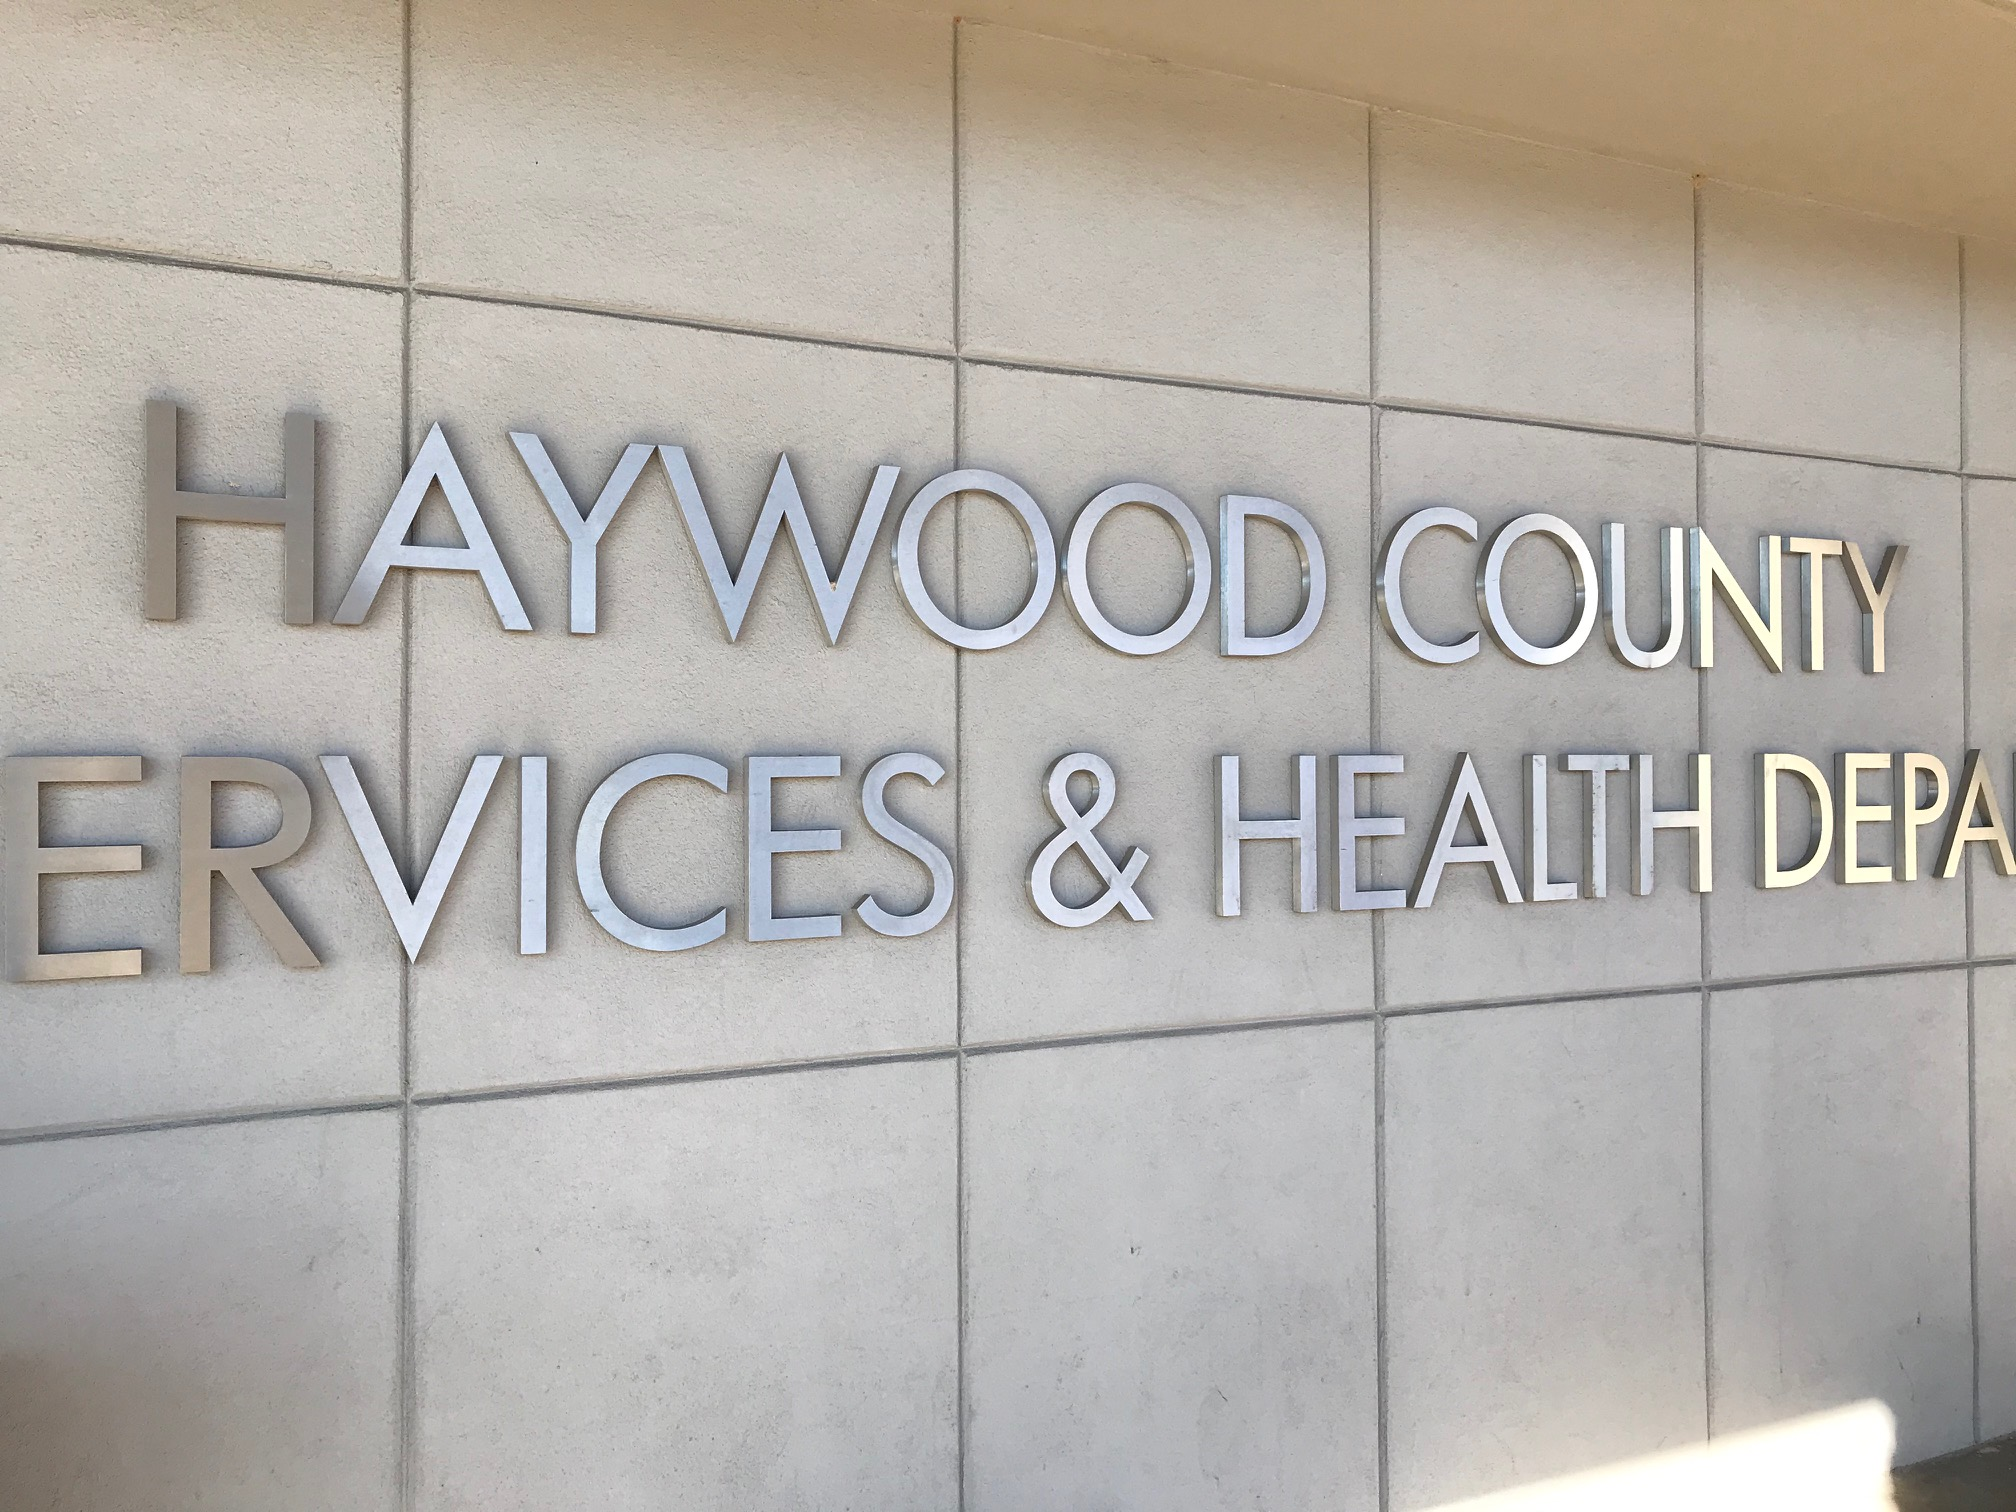 Haywood County health department (Photo credit: WLOS)